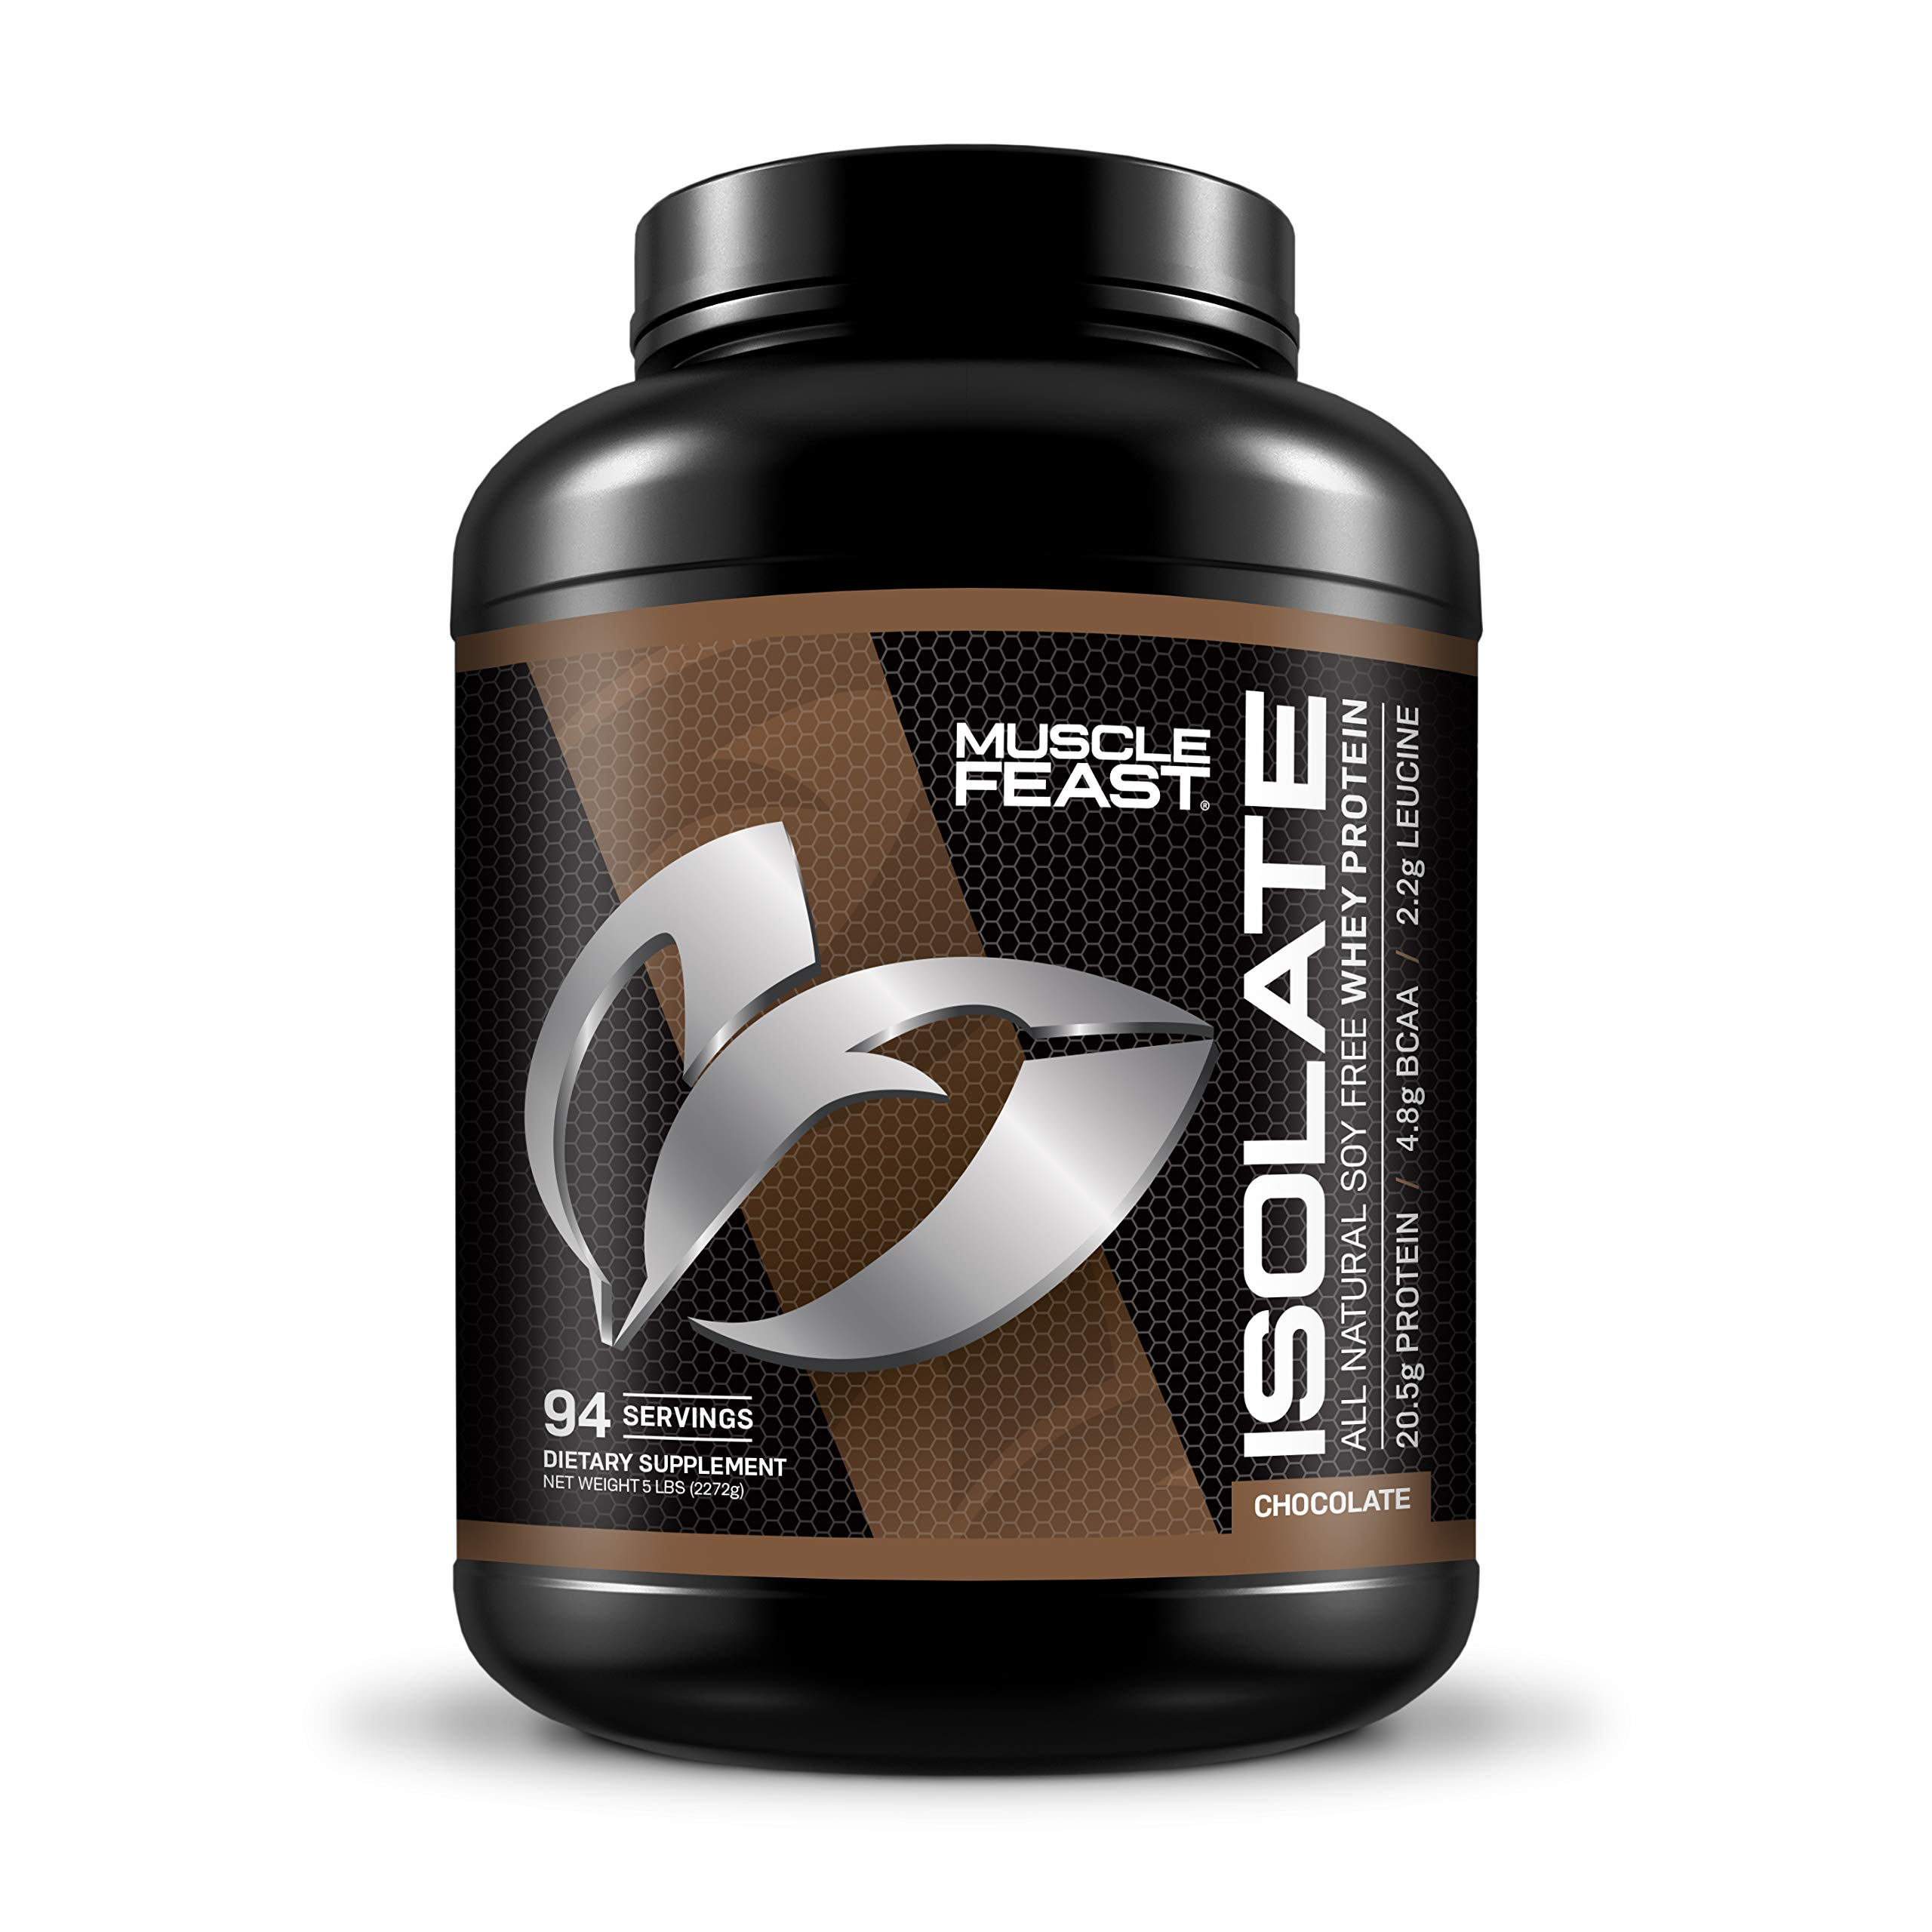 Pure Whey Protein Isolate Powder by Muscle Feast | All Natural and Kosher Certified (5lb, Chocolate)